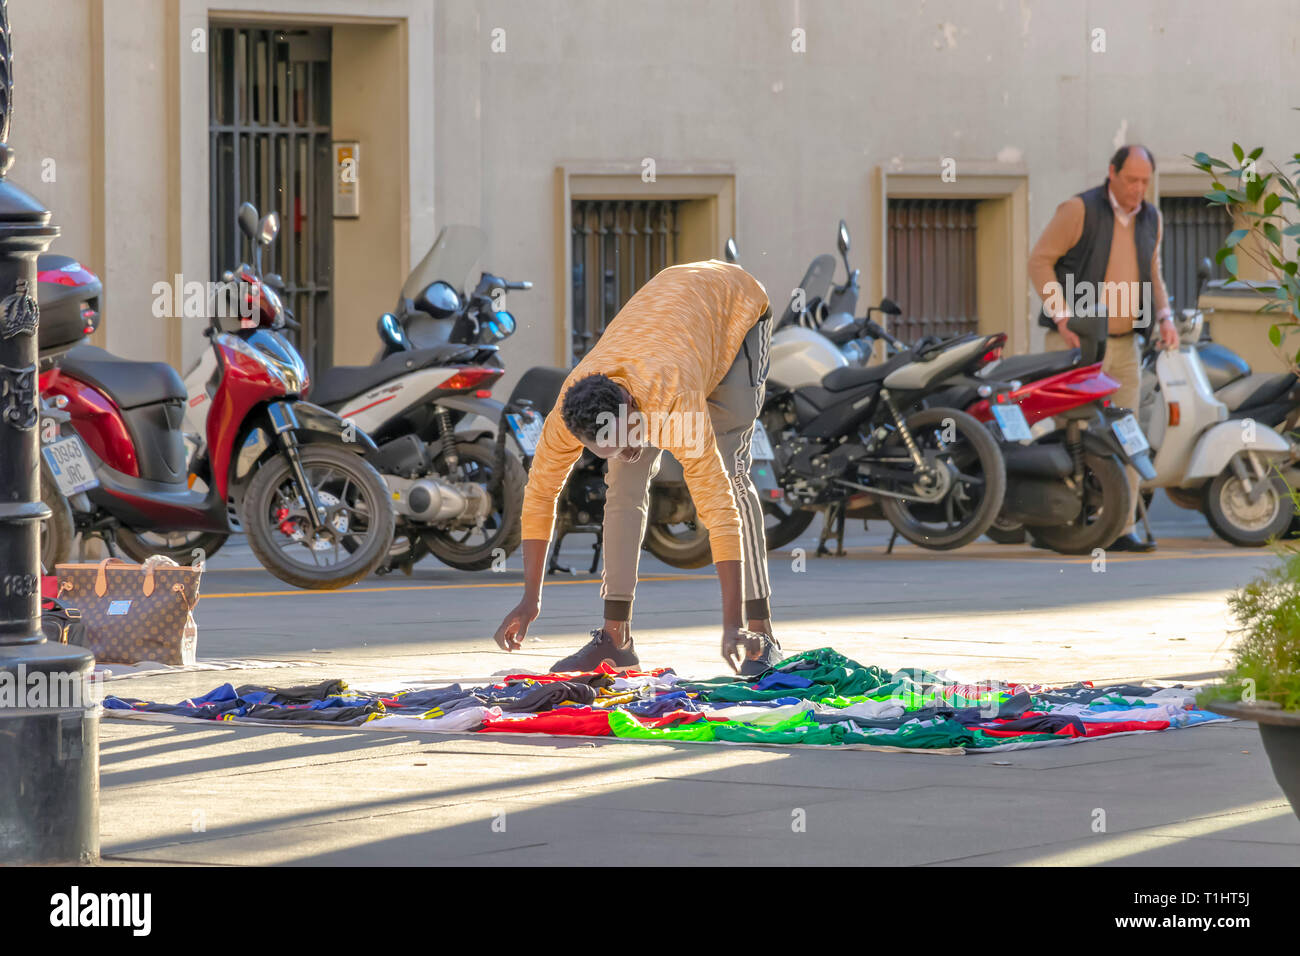 Seville, Spain - March 9, 2019: African immigrant selling their